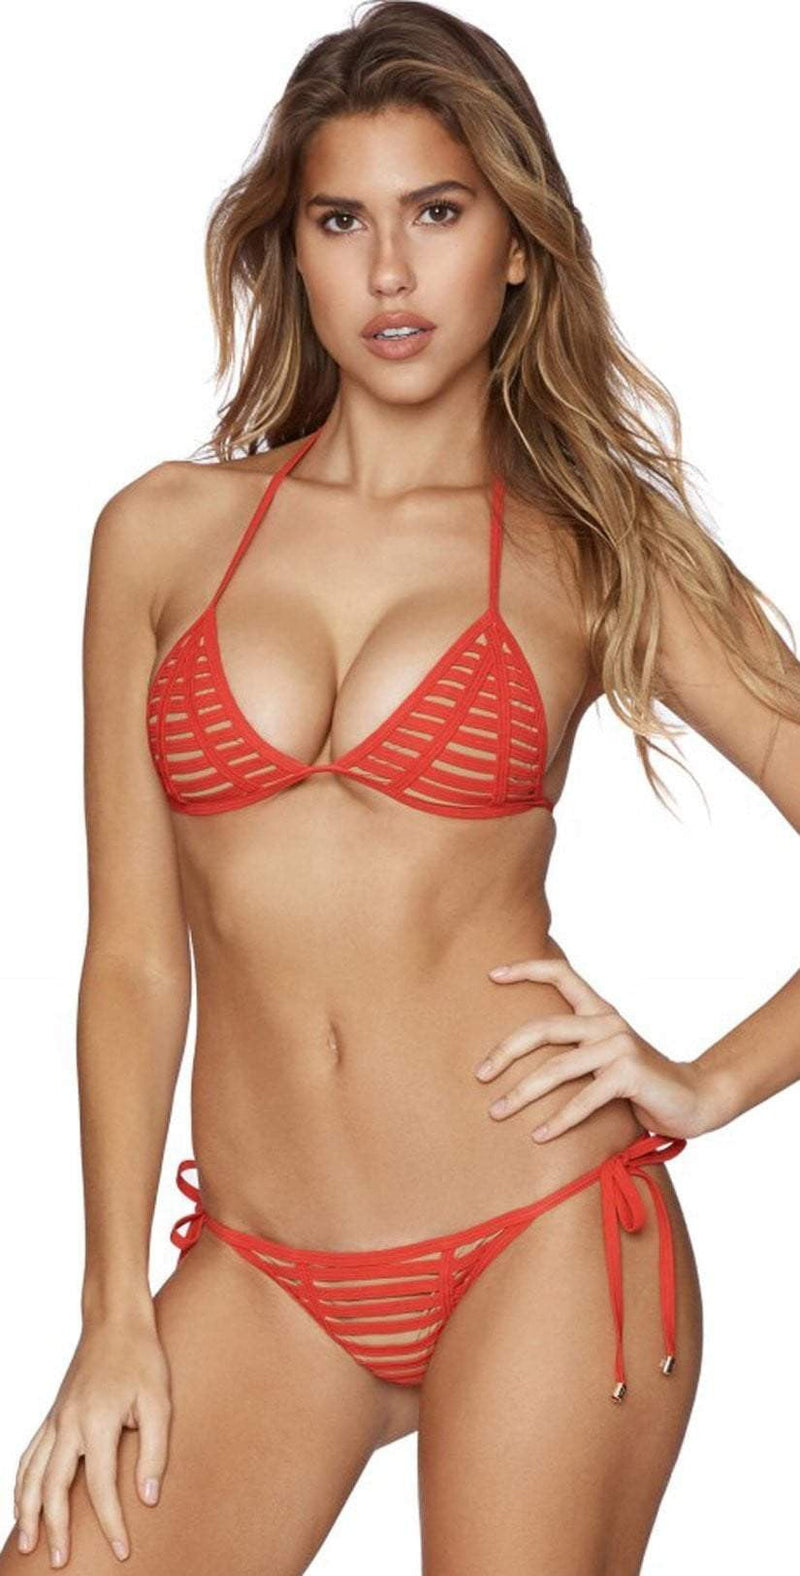 Beach Bunny Hard Summer Tie Side Skimpy Bottom in Red B16104B2-RED: